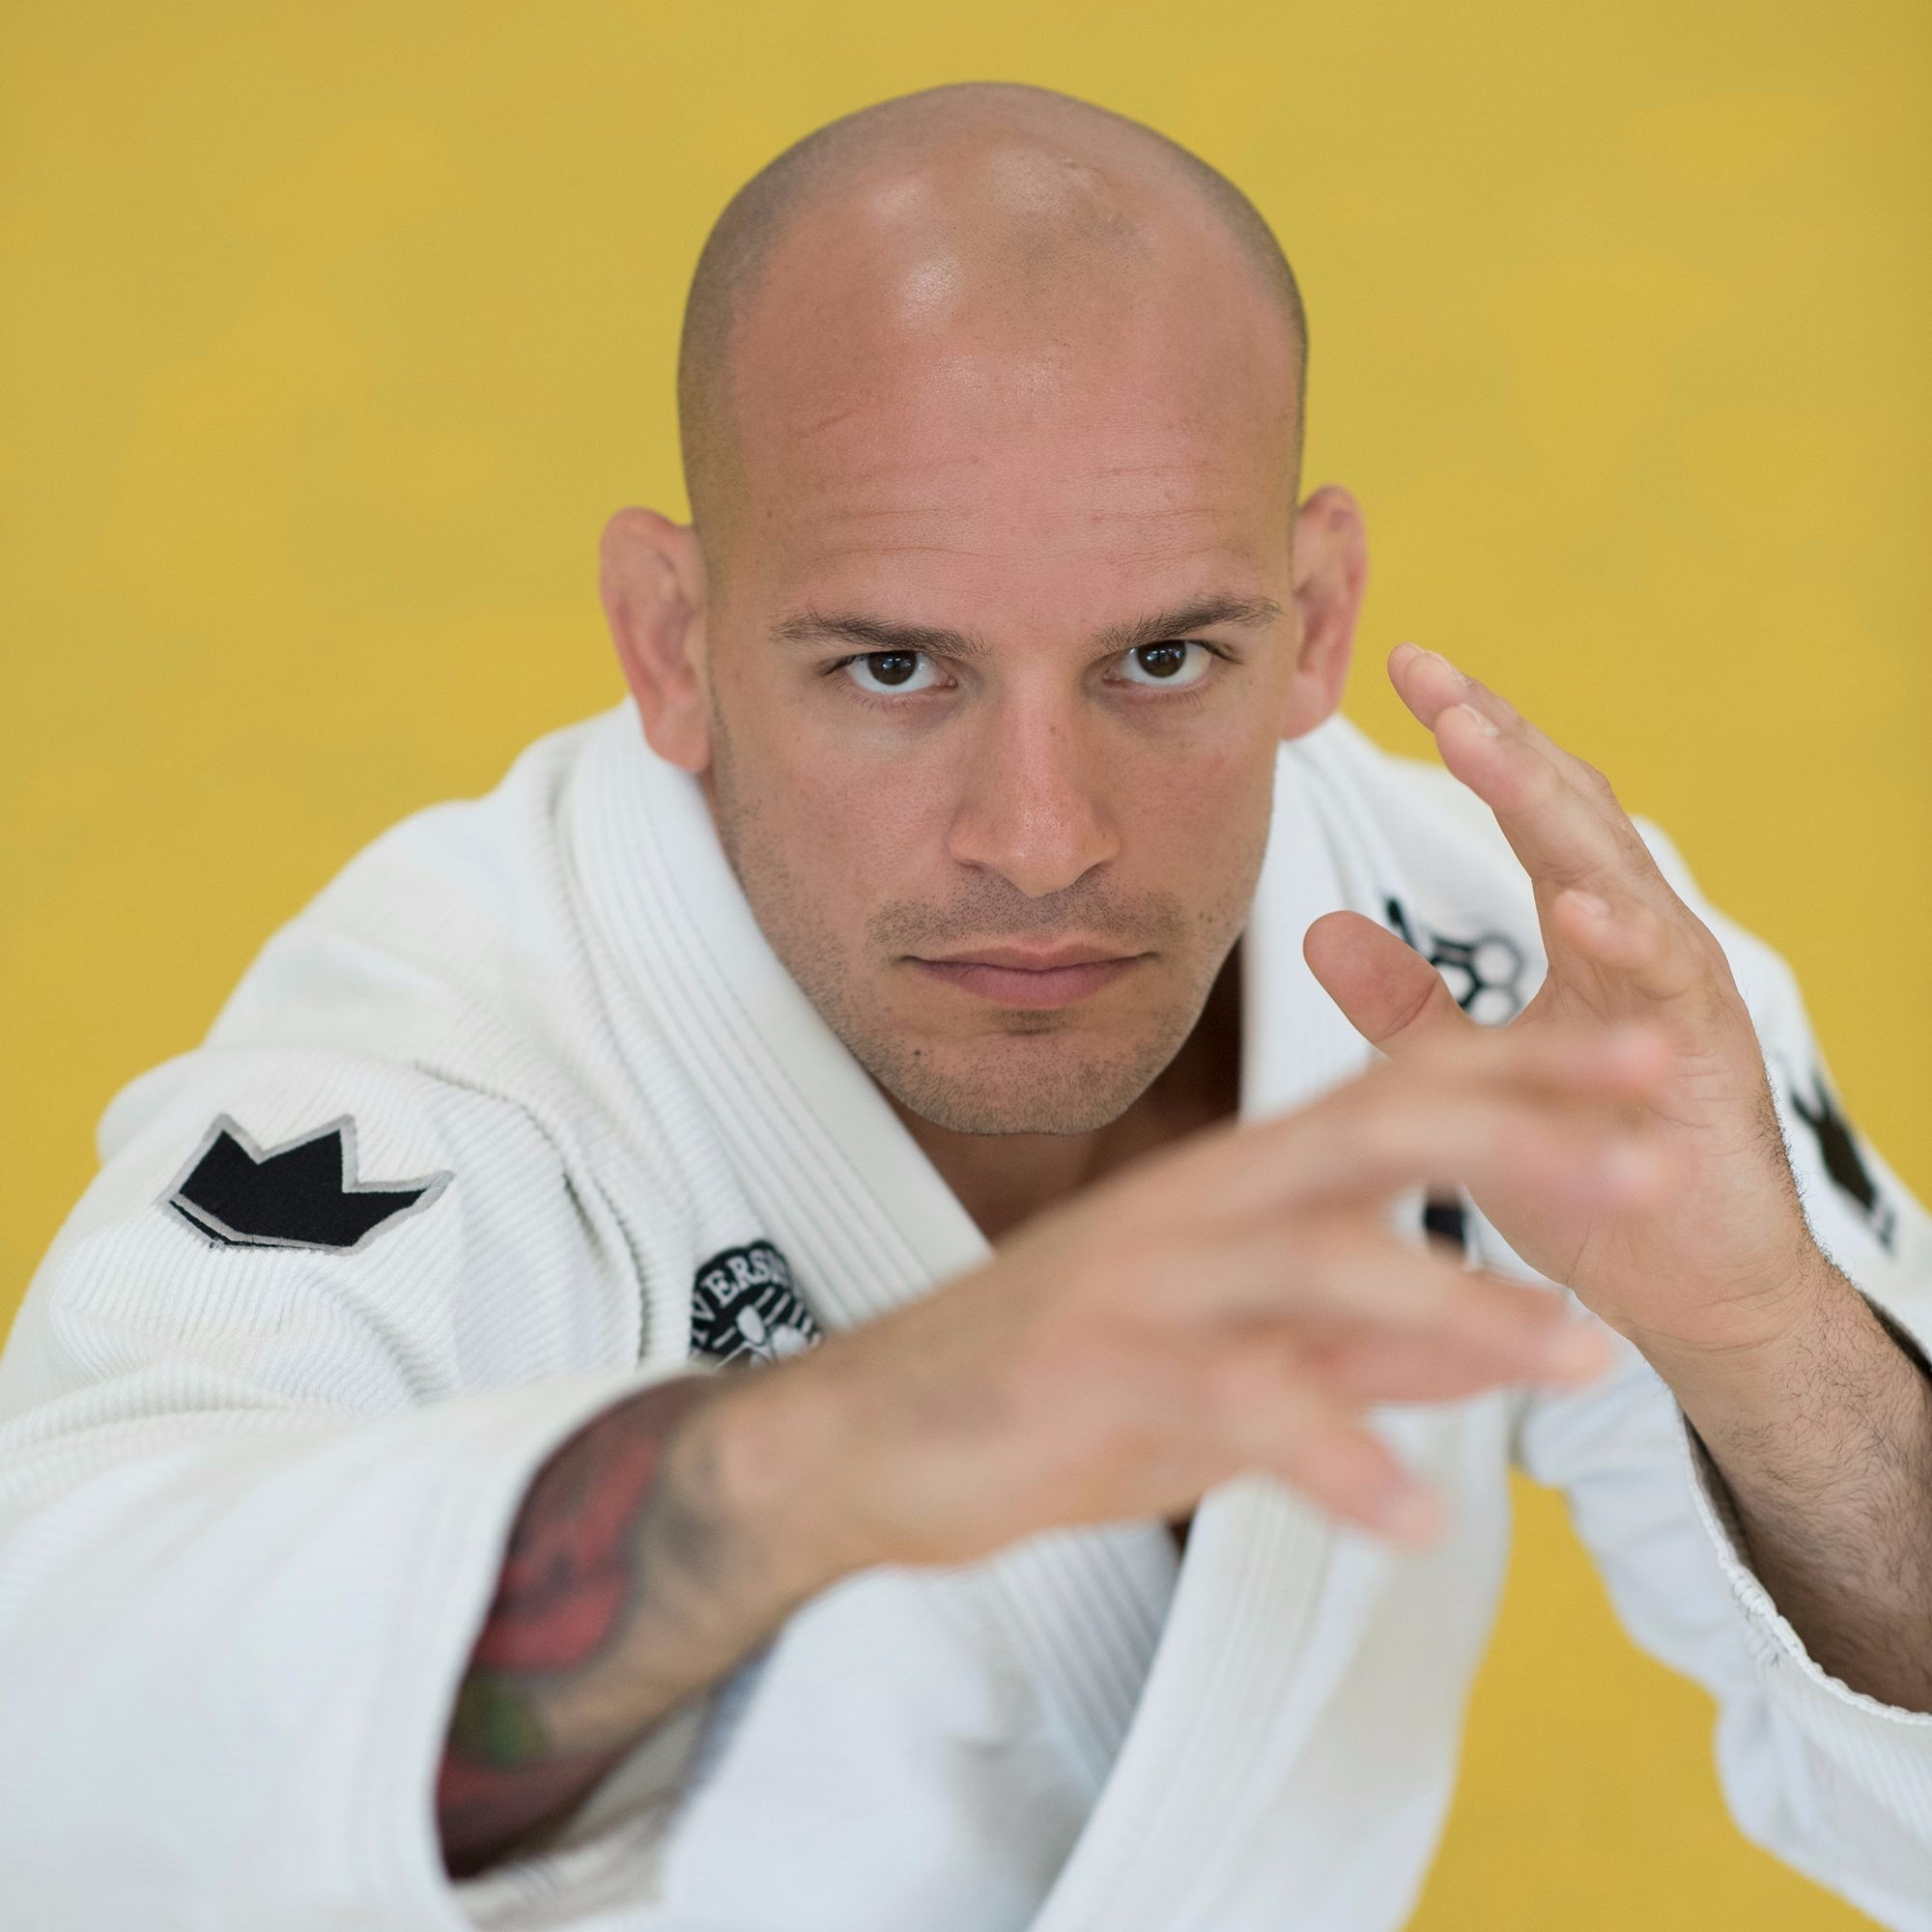 Xande Ribeiro is one of the most decorated Brazilian Jiu-Jitsu athletes of all times, a seven-time BJJ world champion as a black belt, and a two-time ADCC winner. He also has a hard to beat time span on top, with titles as far back as the Pan in 2001, and as recent as the IBJJF Worlds in 2015.